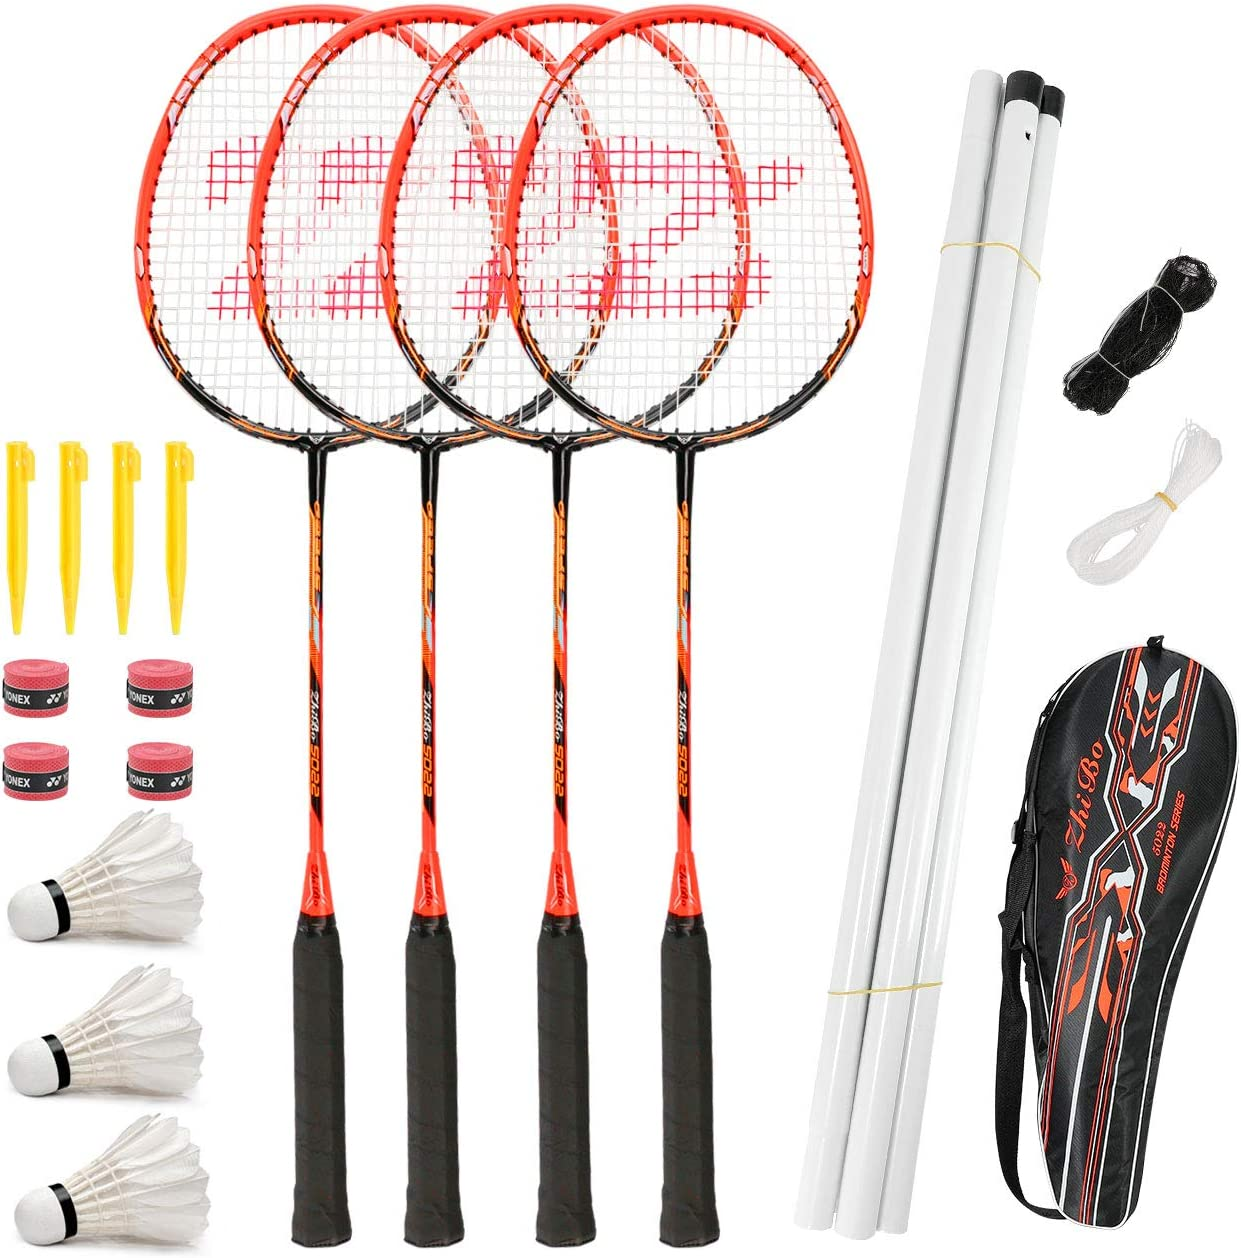 Fostoy Challenge the lowest price Badminton Racket Set 4 Sh Max 40% OFF with 3 Racquets Pack